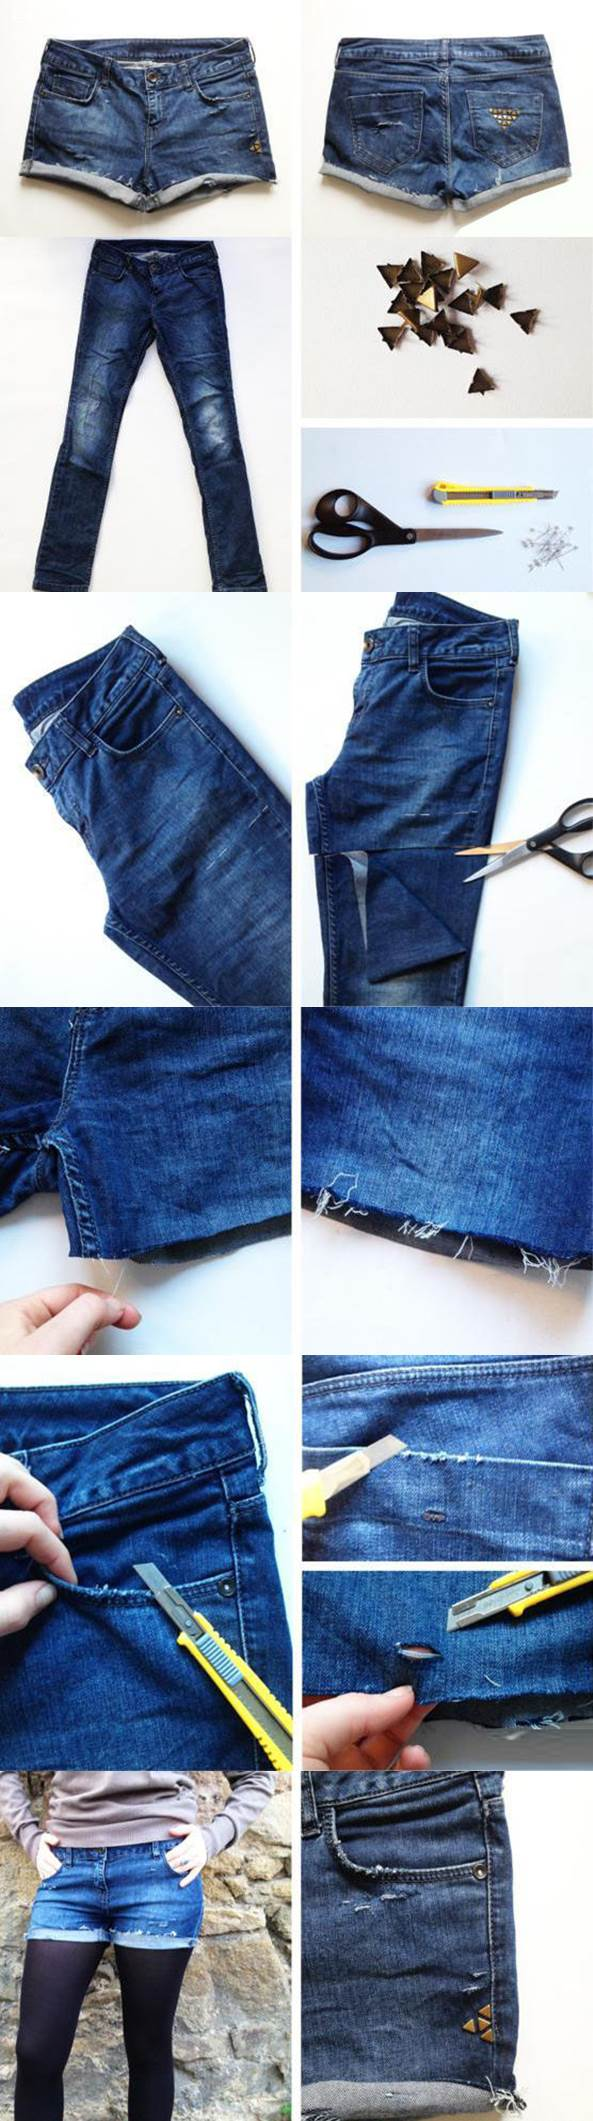 DIY Studded Shorts from Old Jeans 2